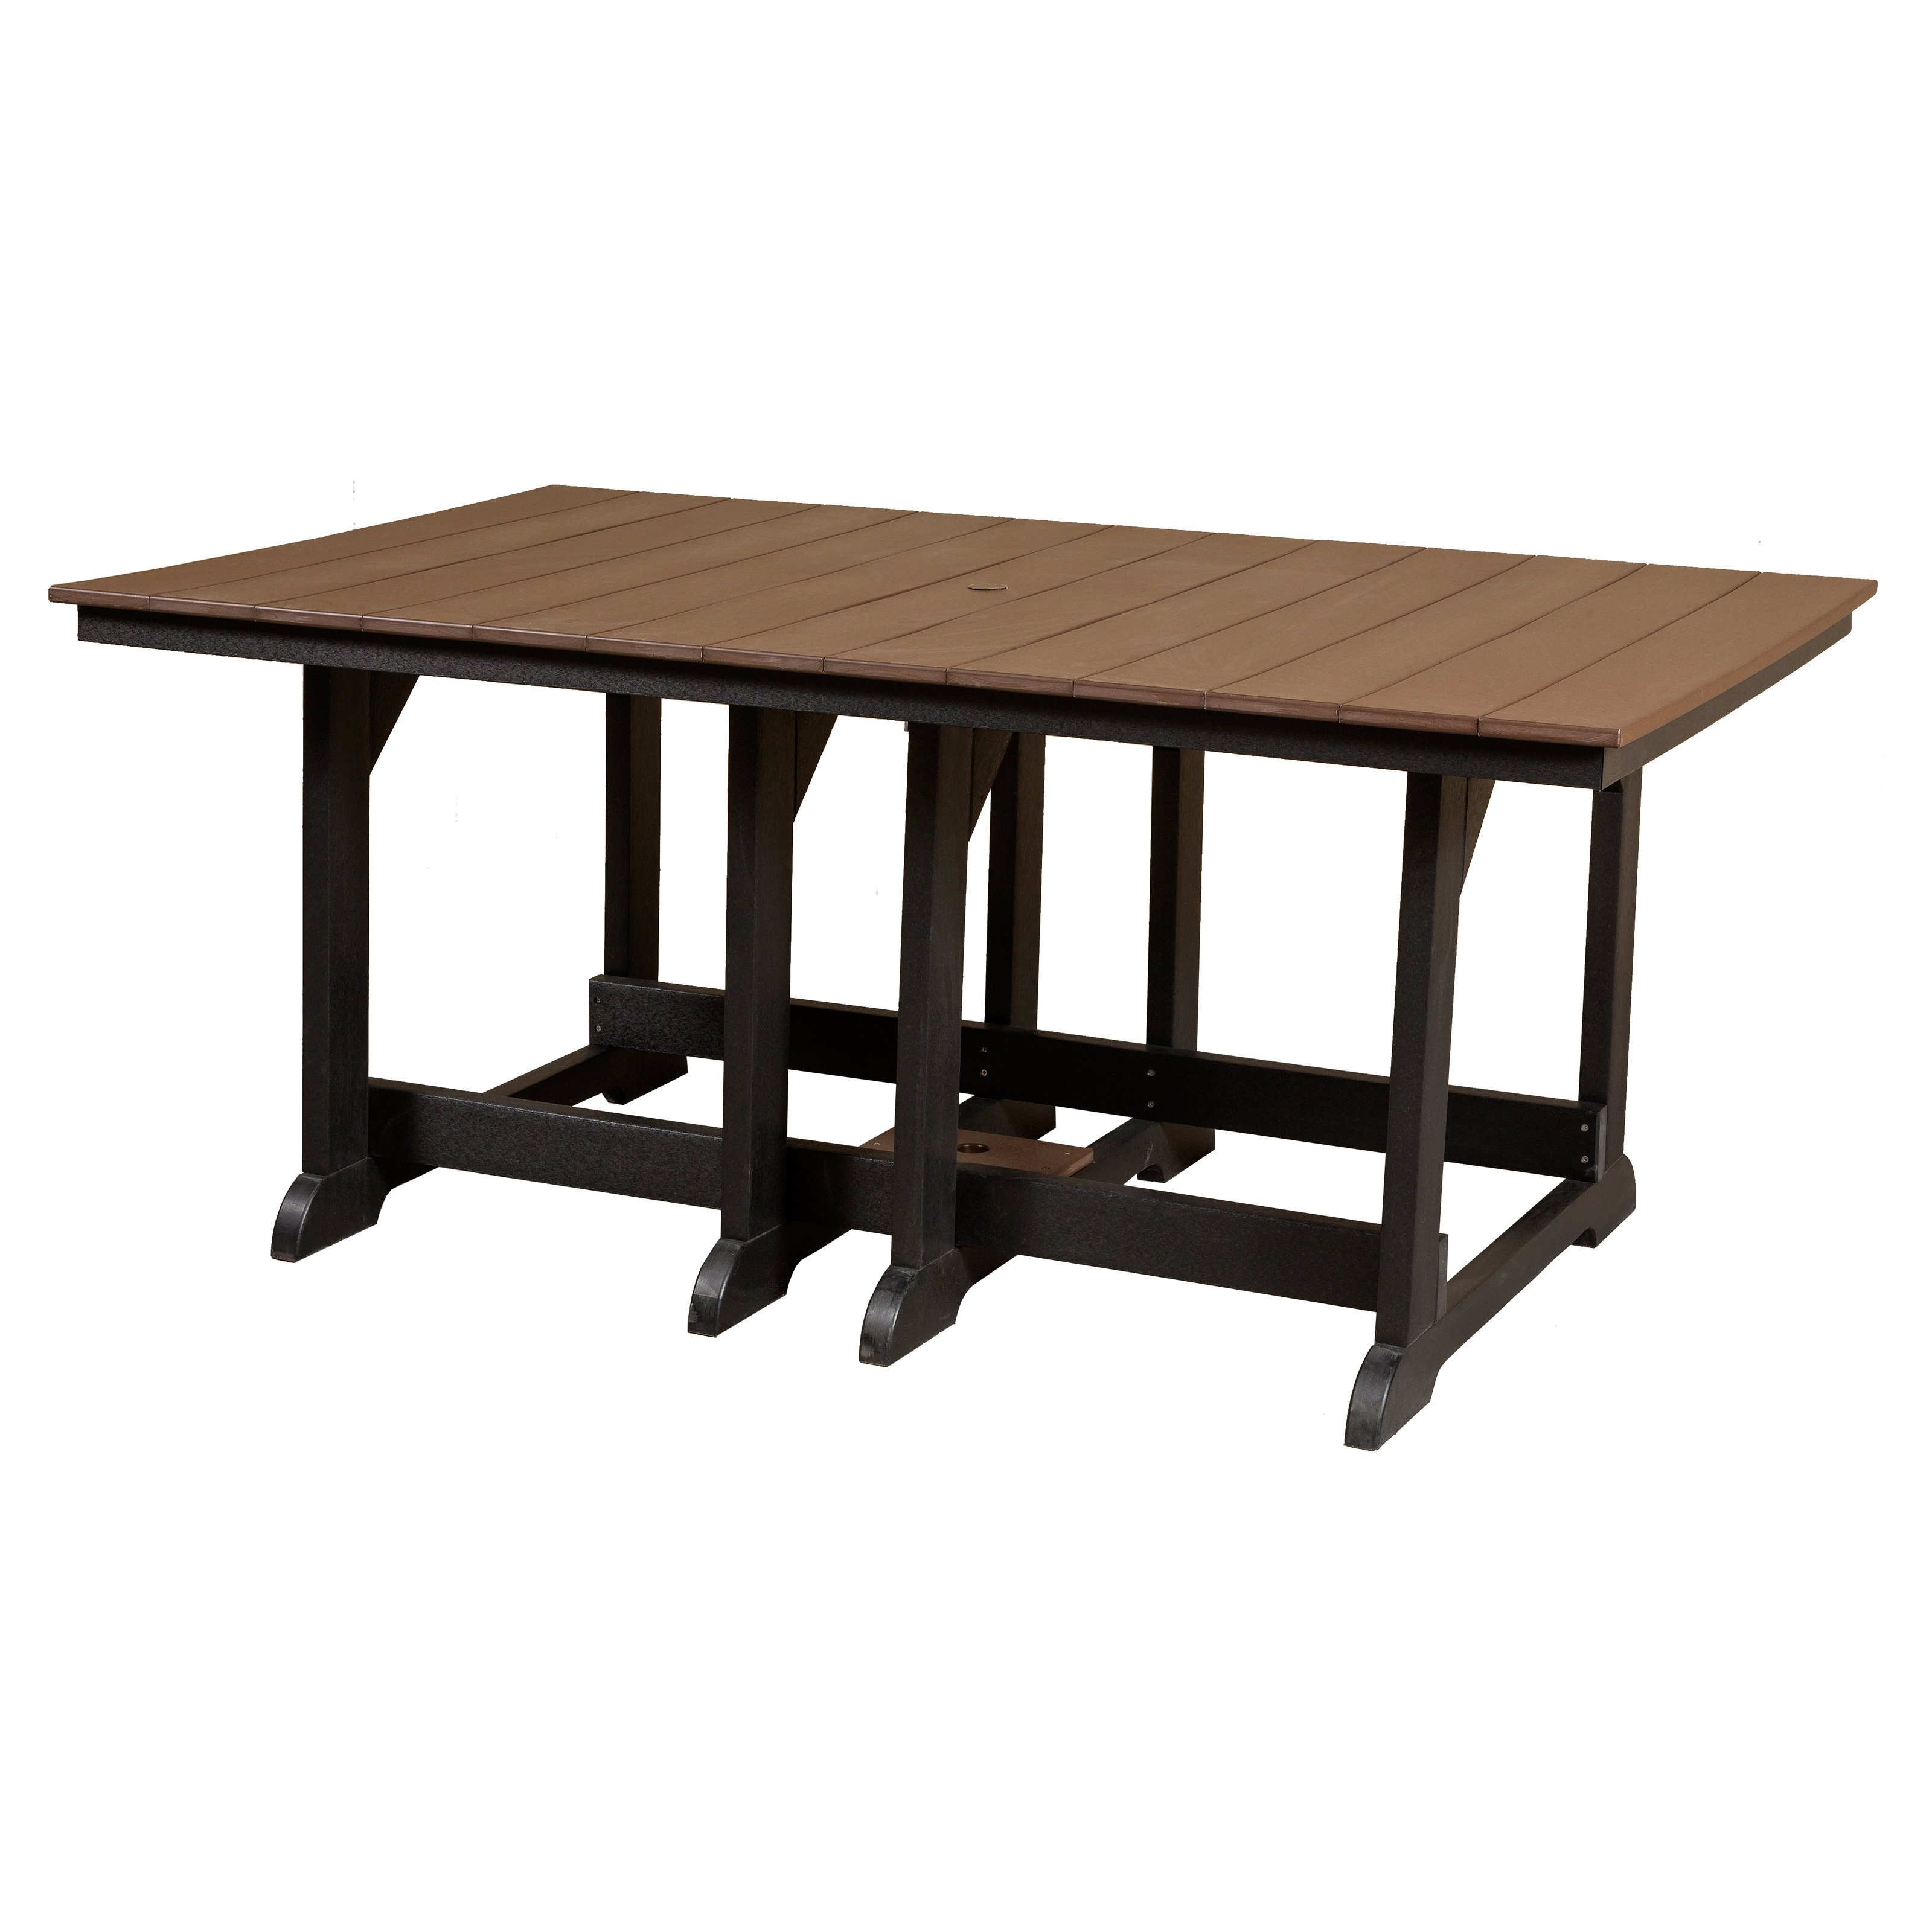 Little Cottage Heritage Recycled Plastic 72 in. Rectangular Patio Dining Table